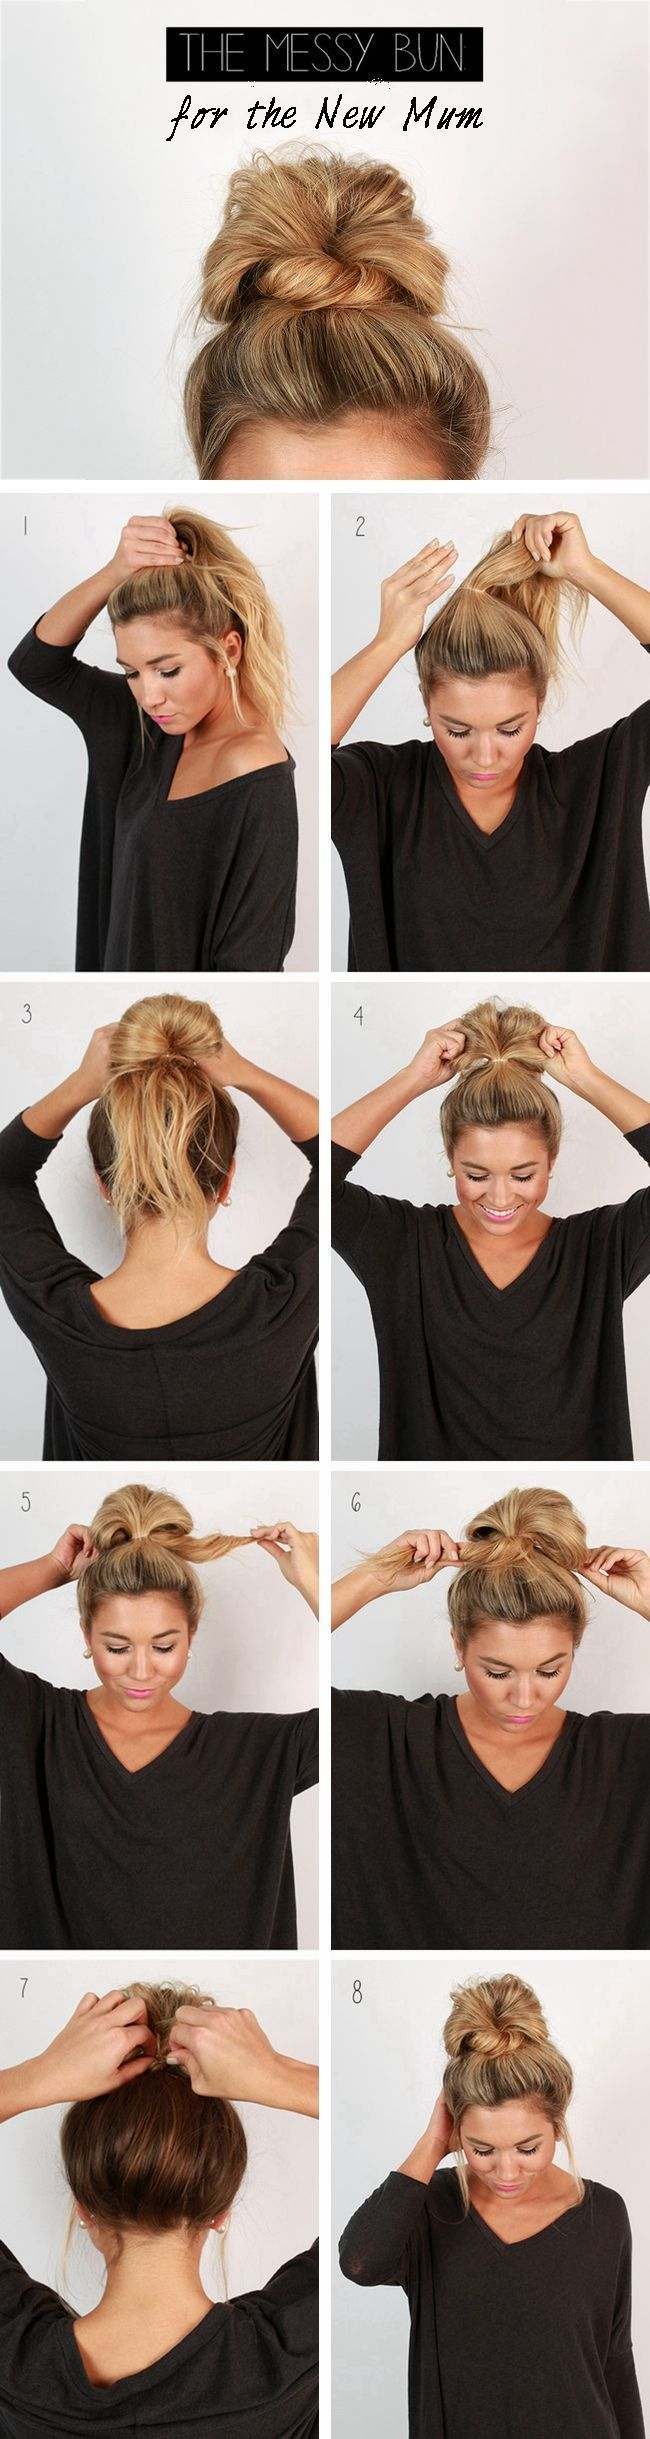 10 best and easy hairstyle ideas for summer 2017 | beauty